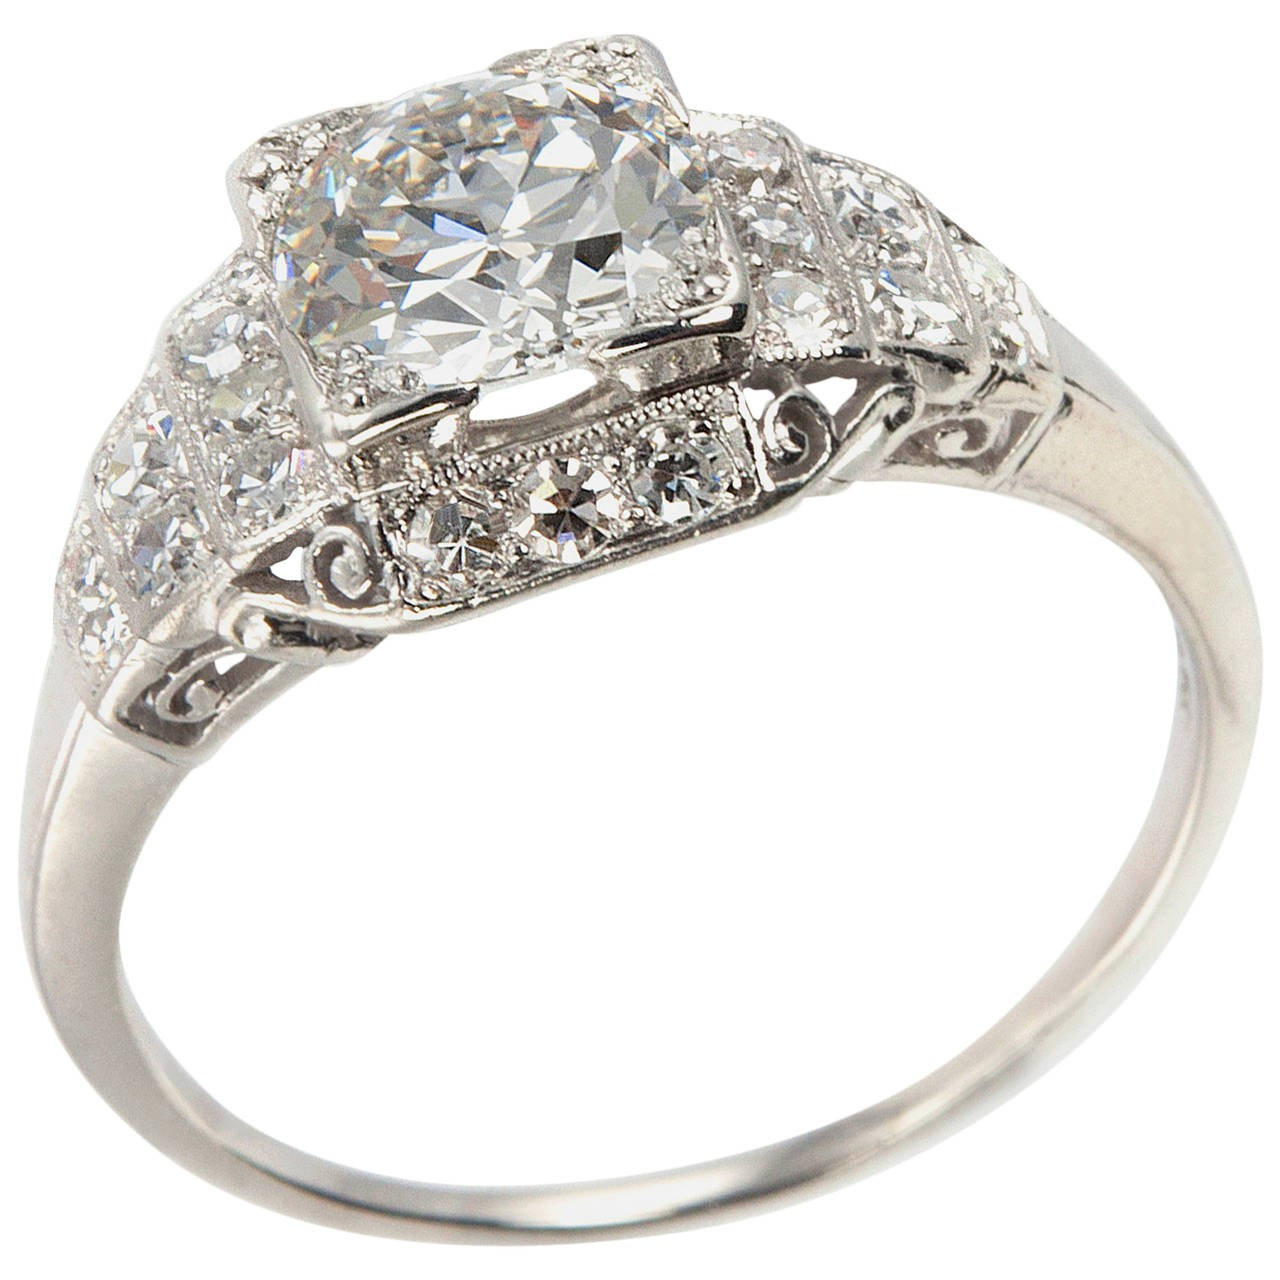 1.04 Carat Old European Cut Diamond Art Deco Engagement Ring